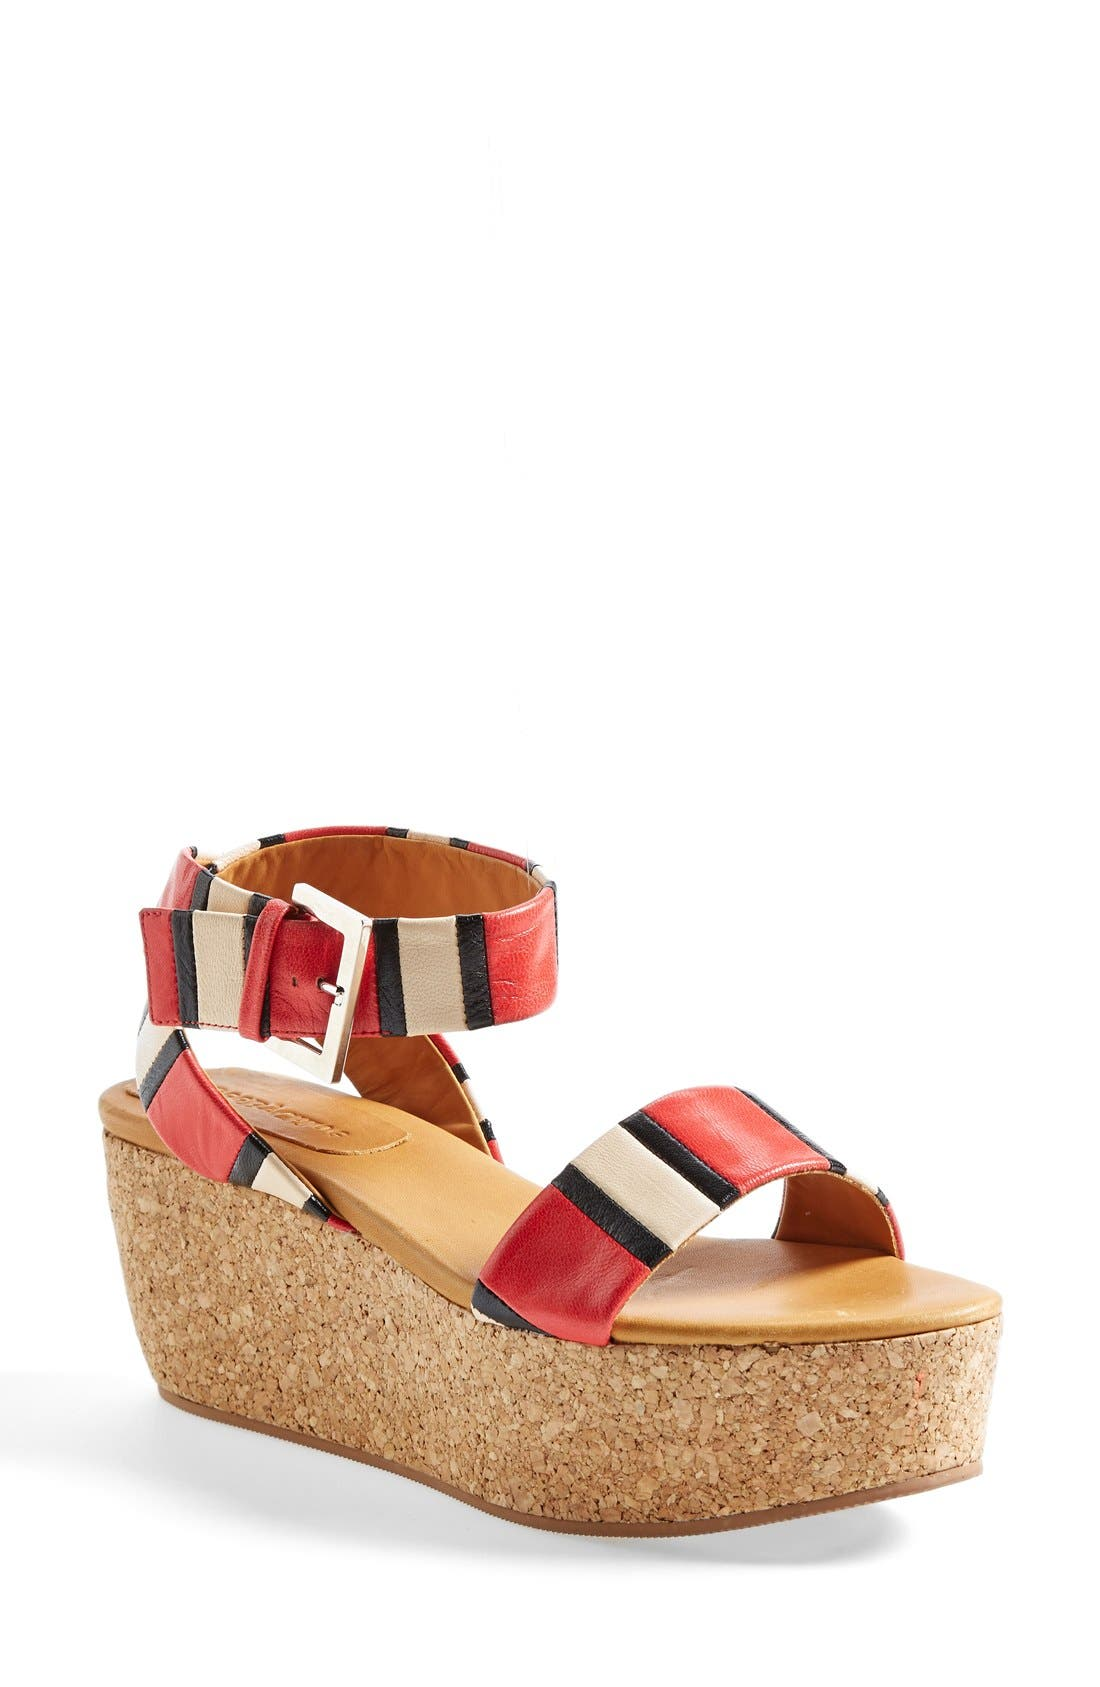 Main Image - See by Chloé 'Patti' Stripe Wedge Sandal